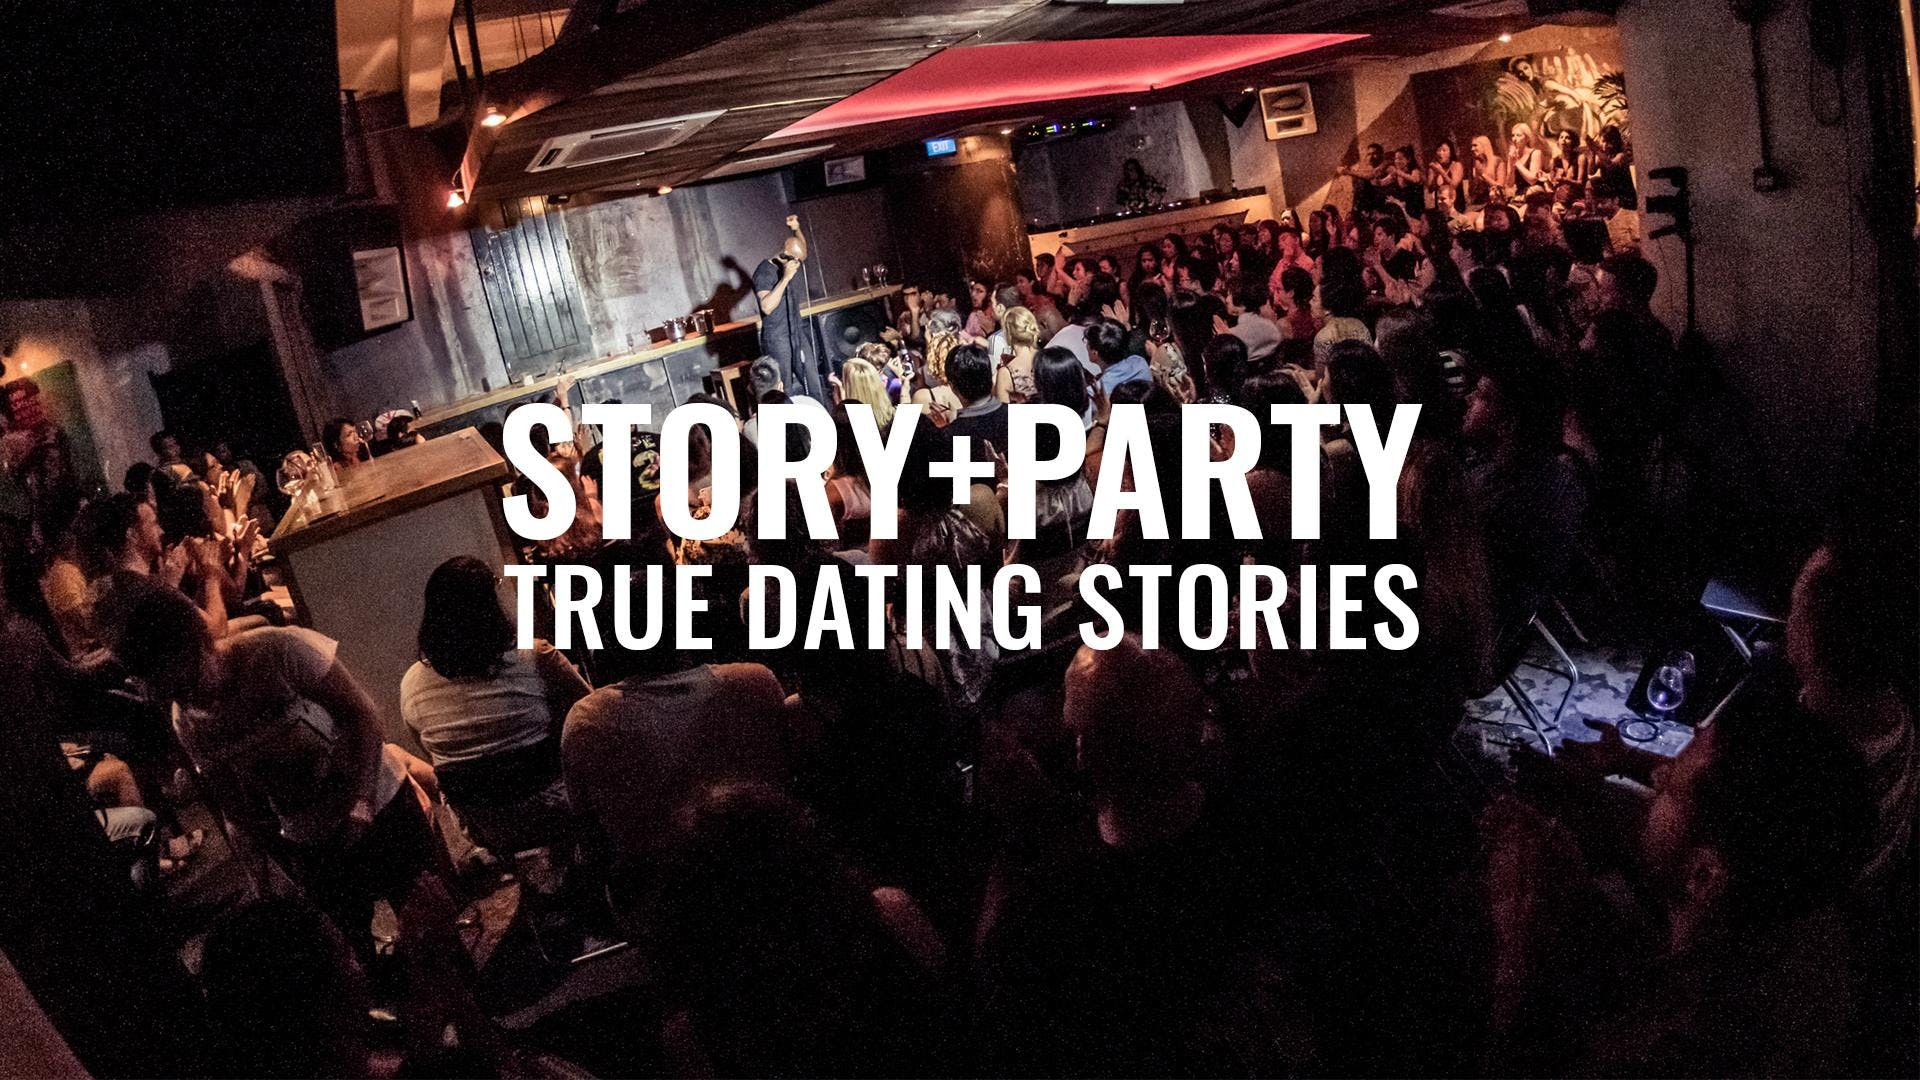 Story Party Dublin | True Dating Stories